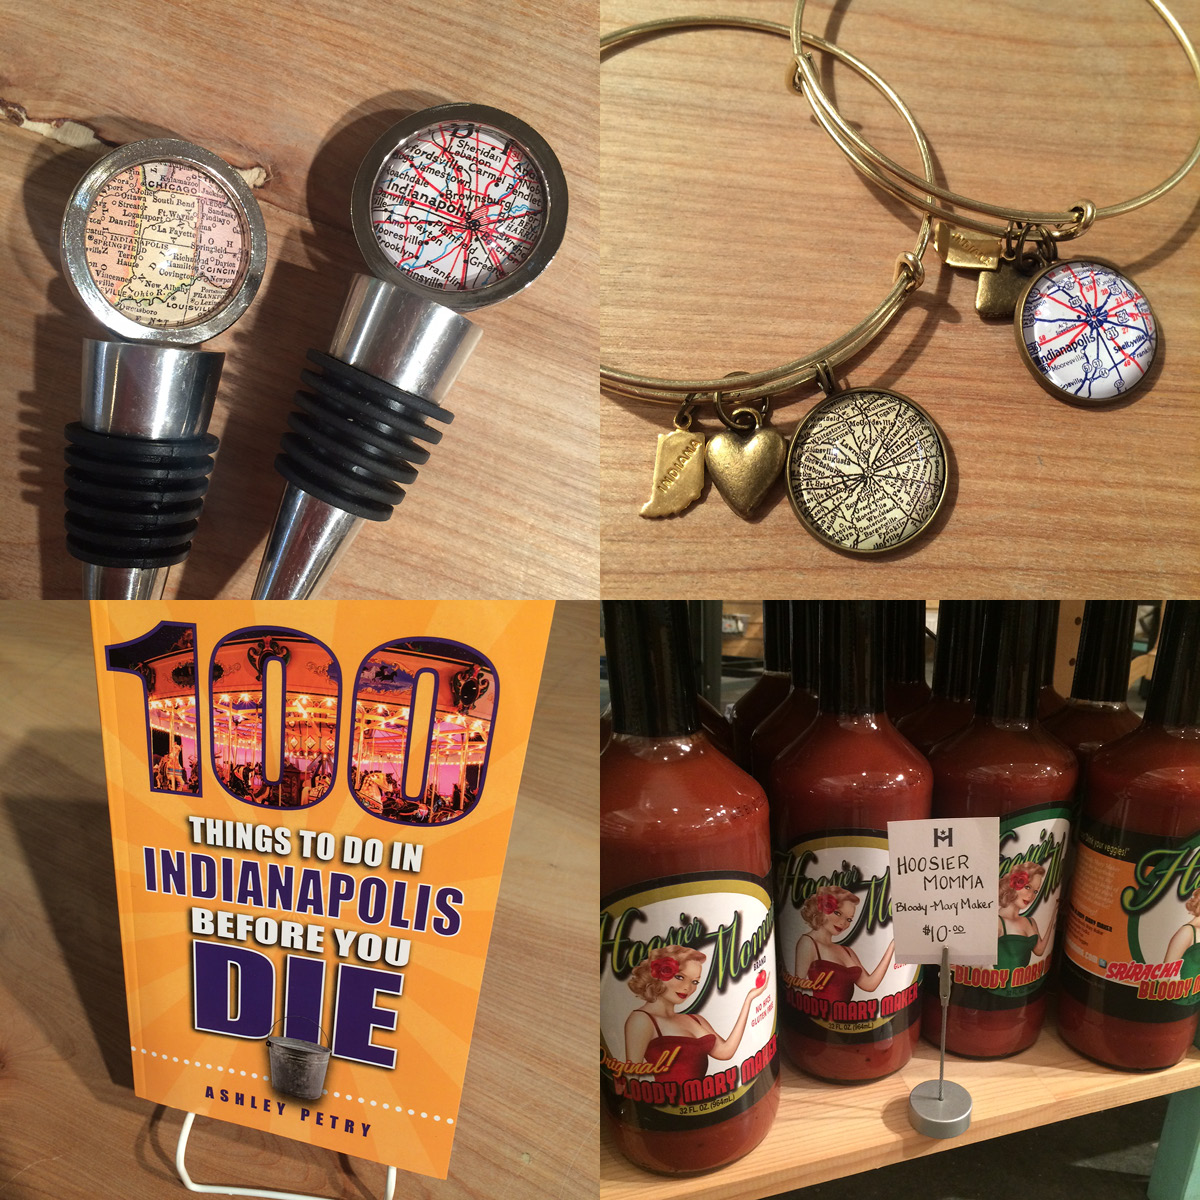 ... wine stoppers and bracelets. We have Evansville and Bloomington, too!  Restock of 100 Things to do in Indianapolis Before You Die by Ashley Petry  and ...